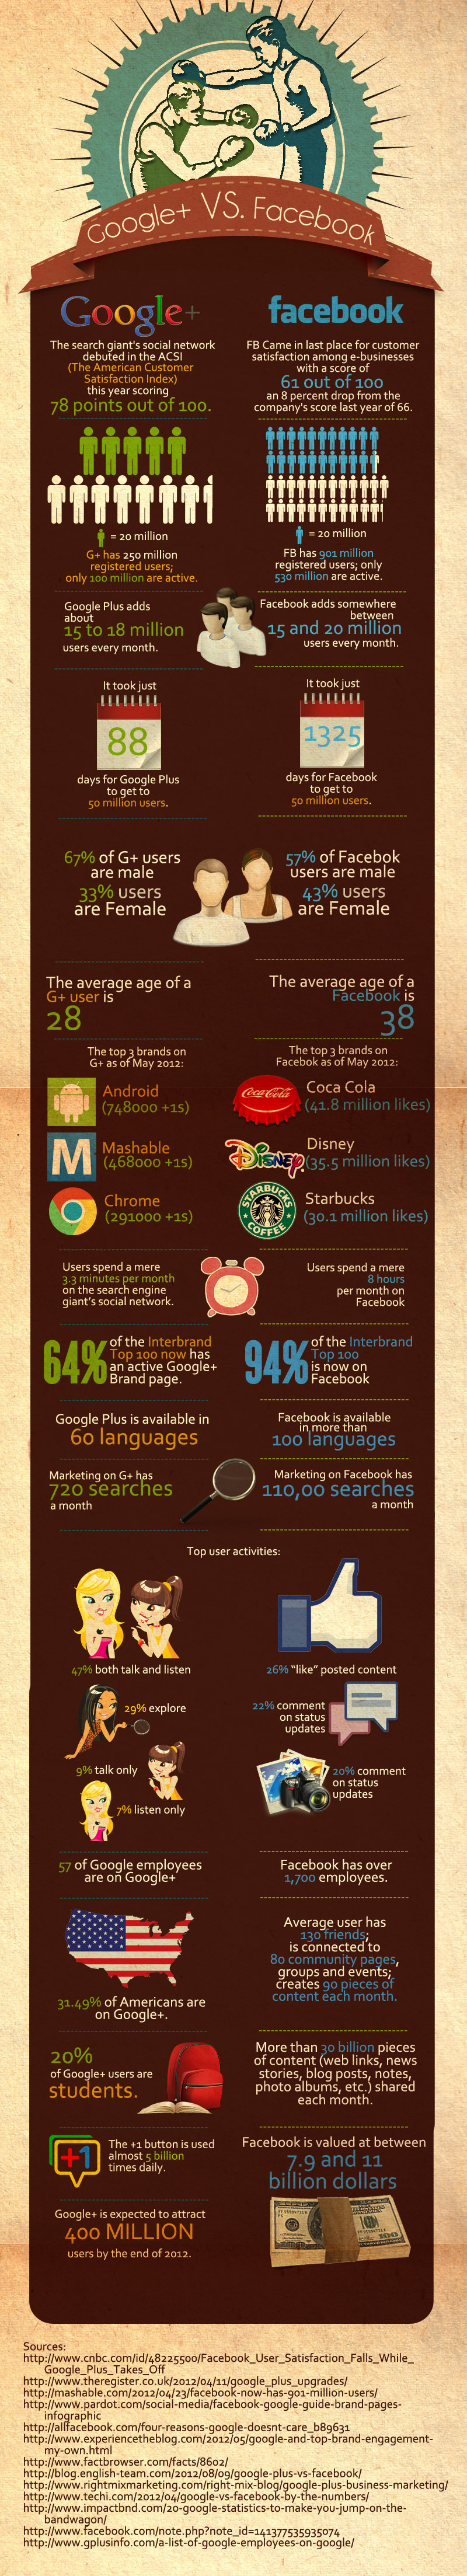 Google Plus Vs Facebook Ifnographic